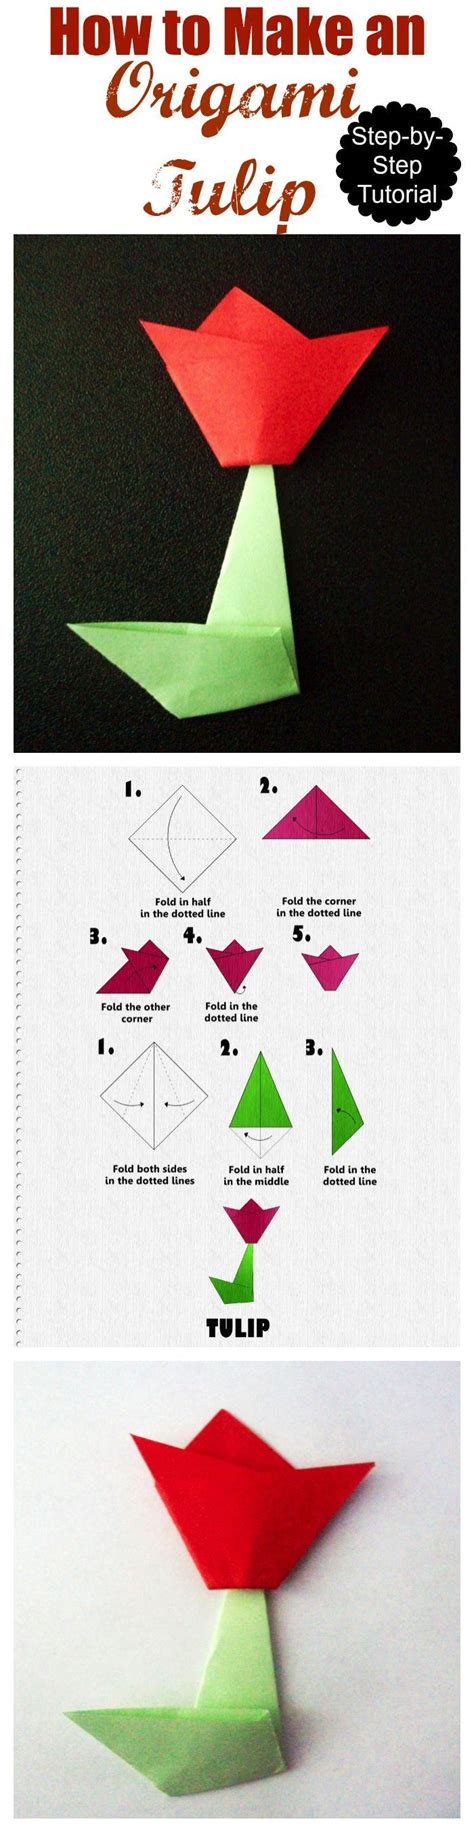 Origami For Adults - how to make an origami tulip step by step tutorial